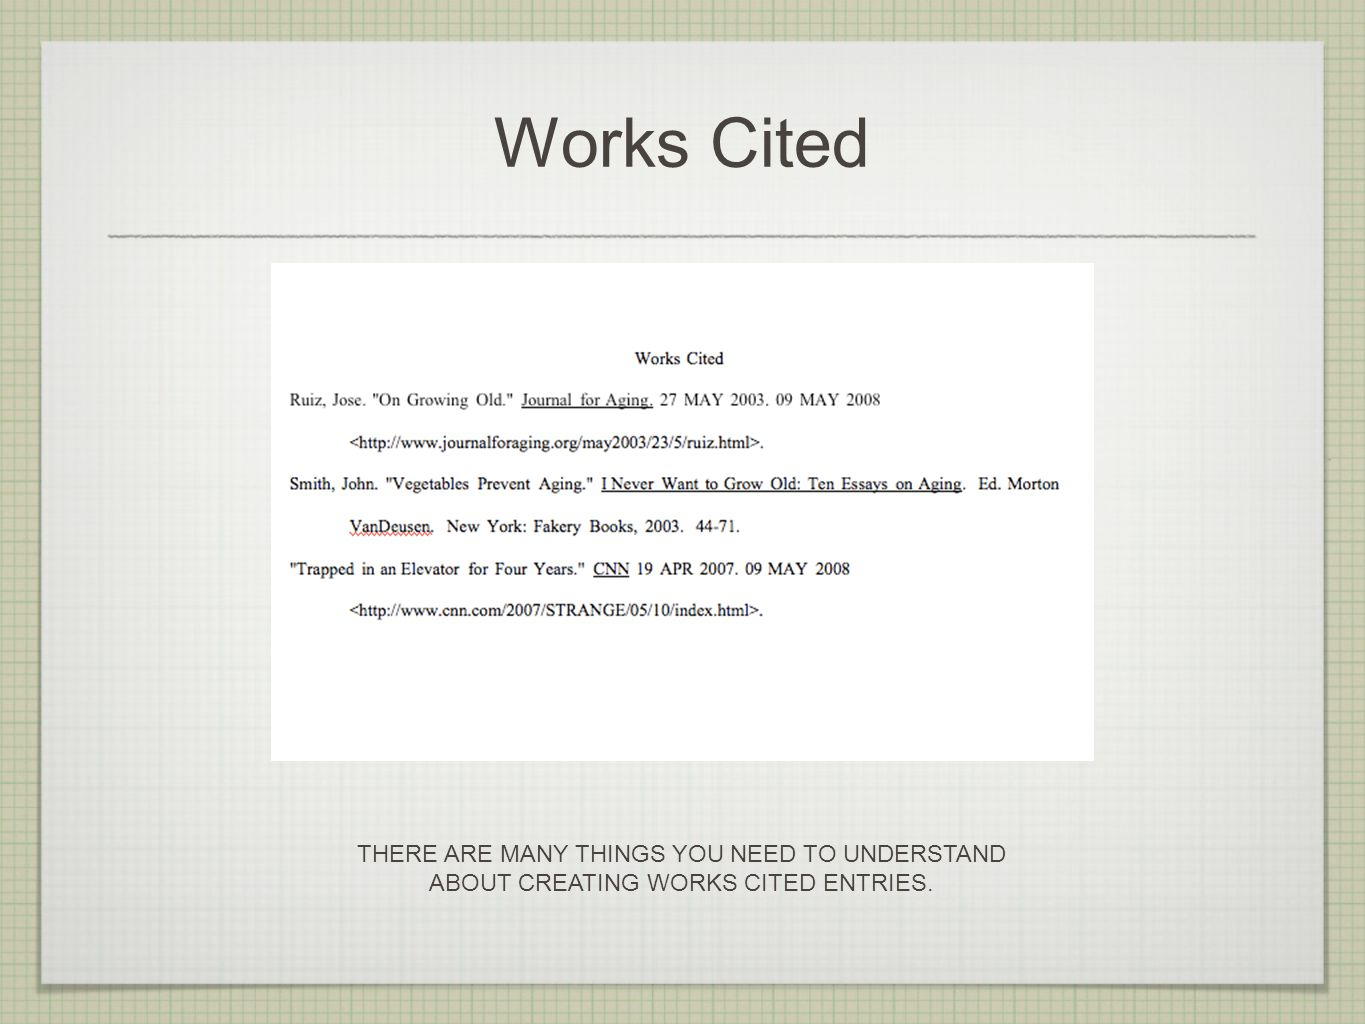 Works Cited THERE ARE MANY THINGS YOU NEED TO UNDERSTAND ABOUT CREATING WORKS CITED ENTRIES.